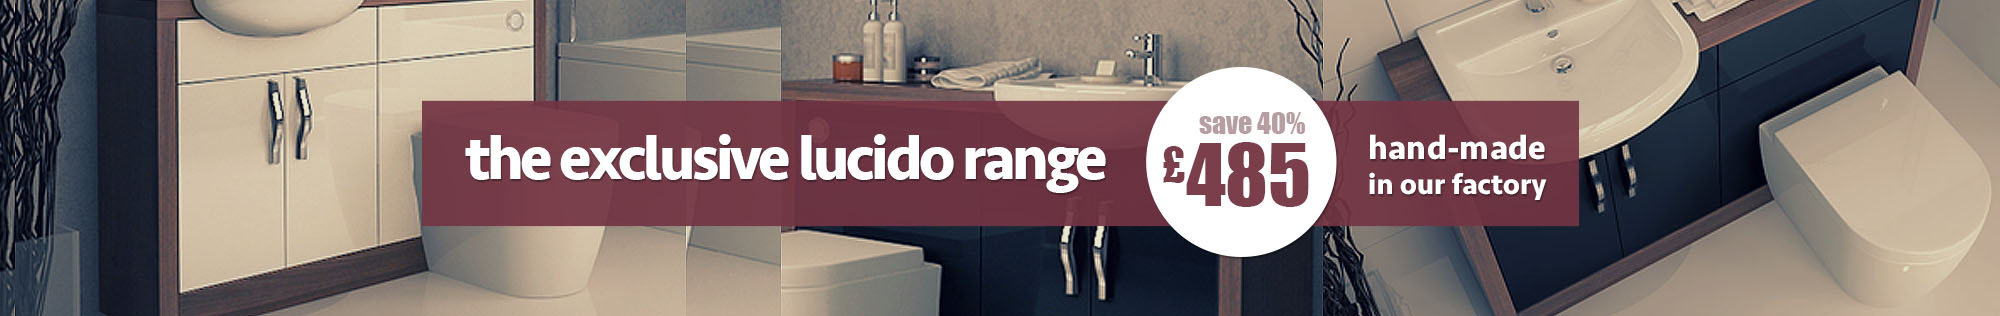 The exclusive Lucido range now £485 - save 40%